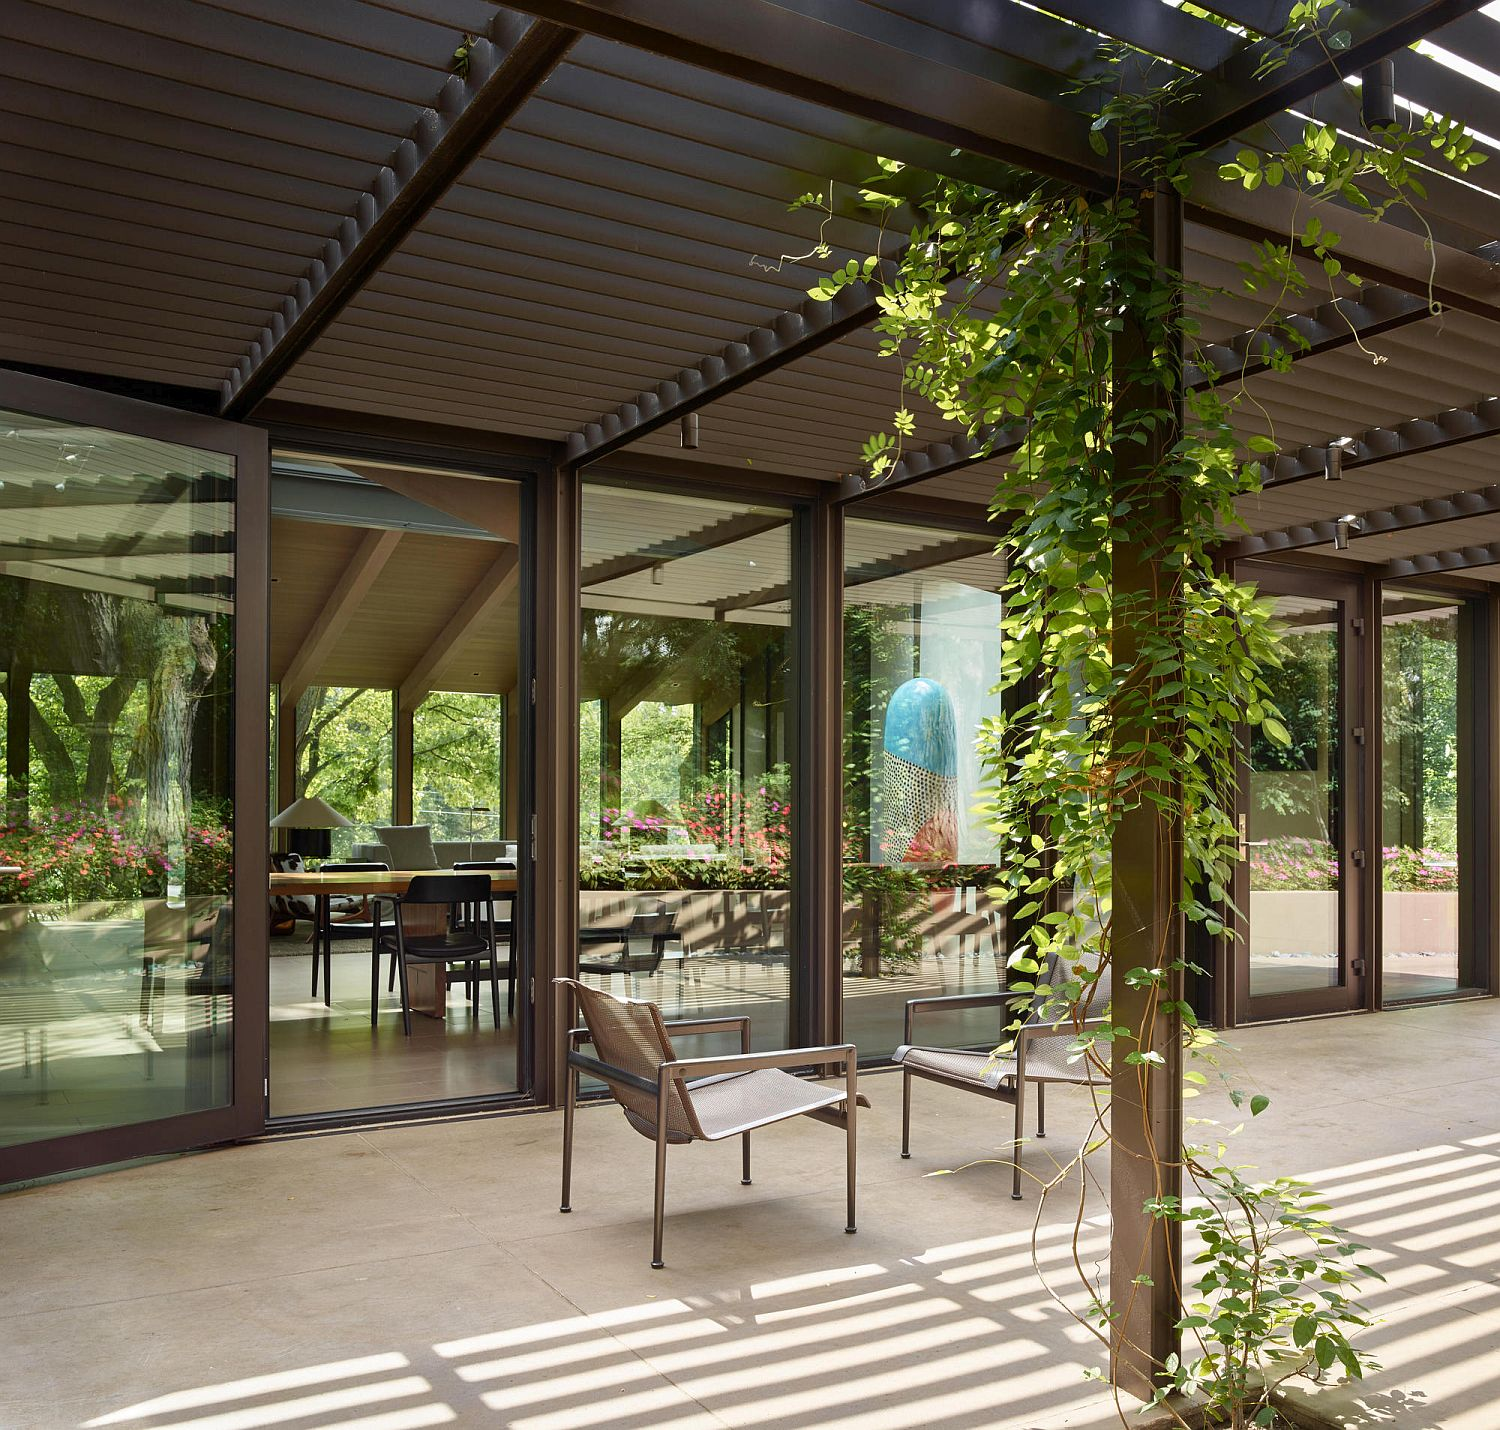 Pergola outside the Omaha home with outdoor sitting area